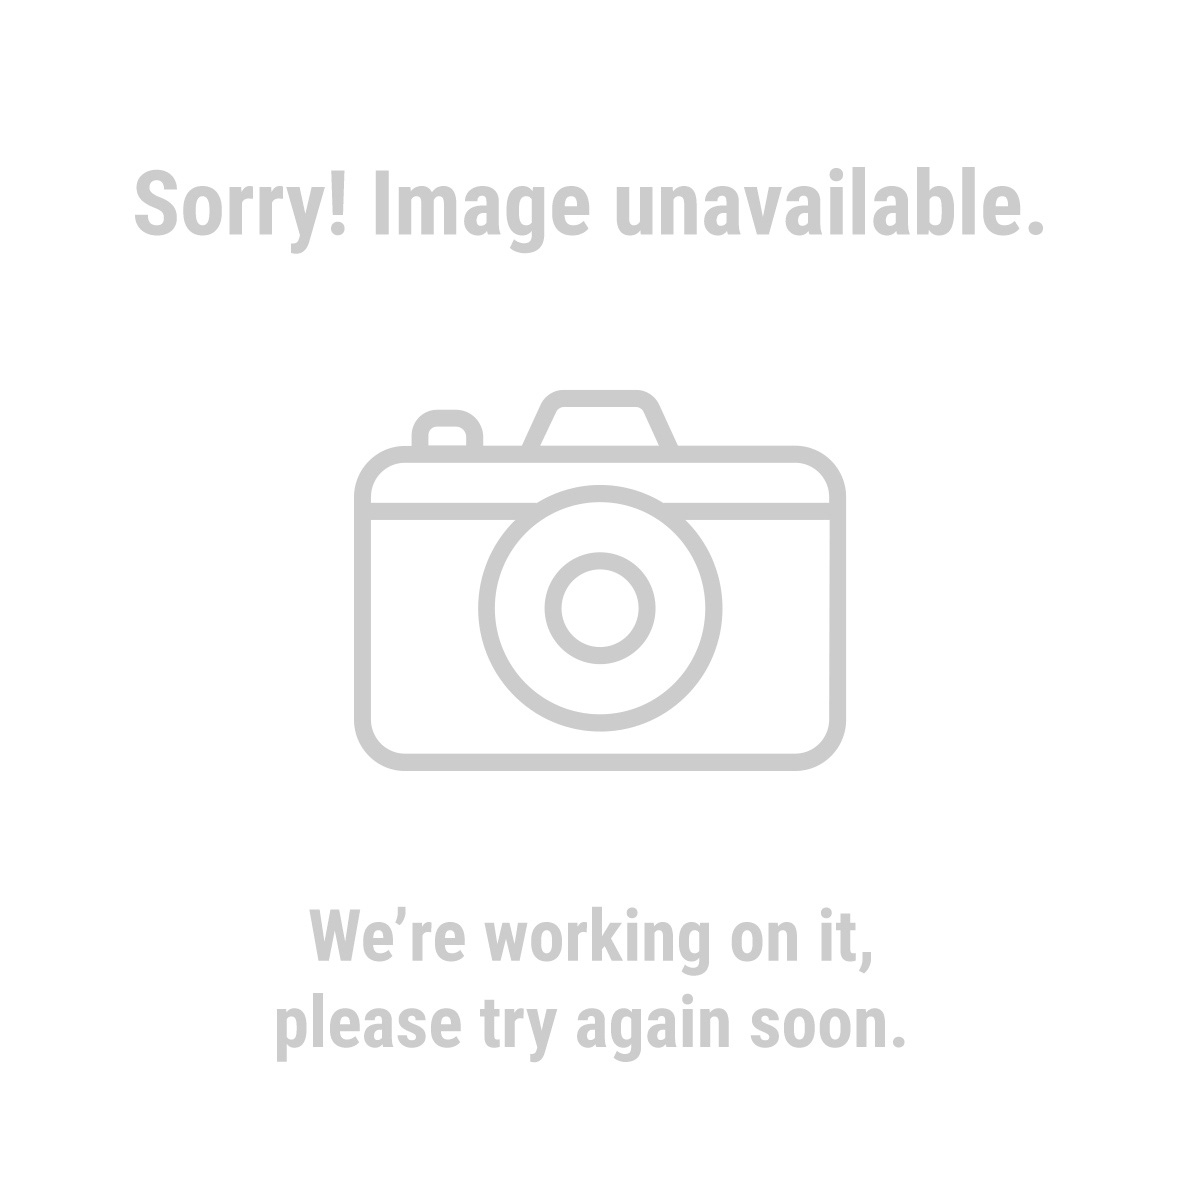 Pacific Hydrostar 69488 1650 PSI Pressure Washer with Auto-Stop